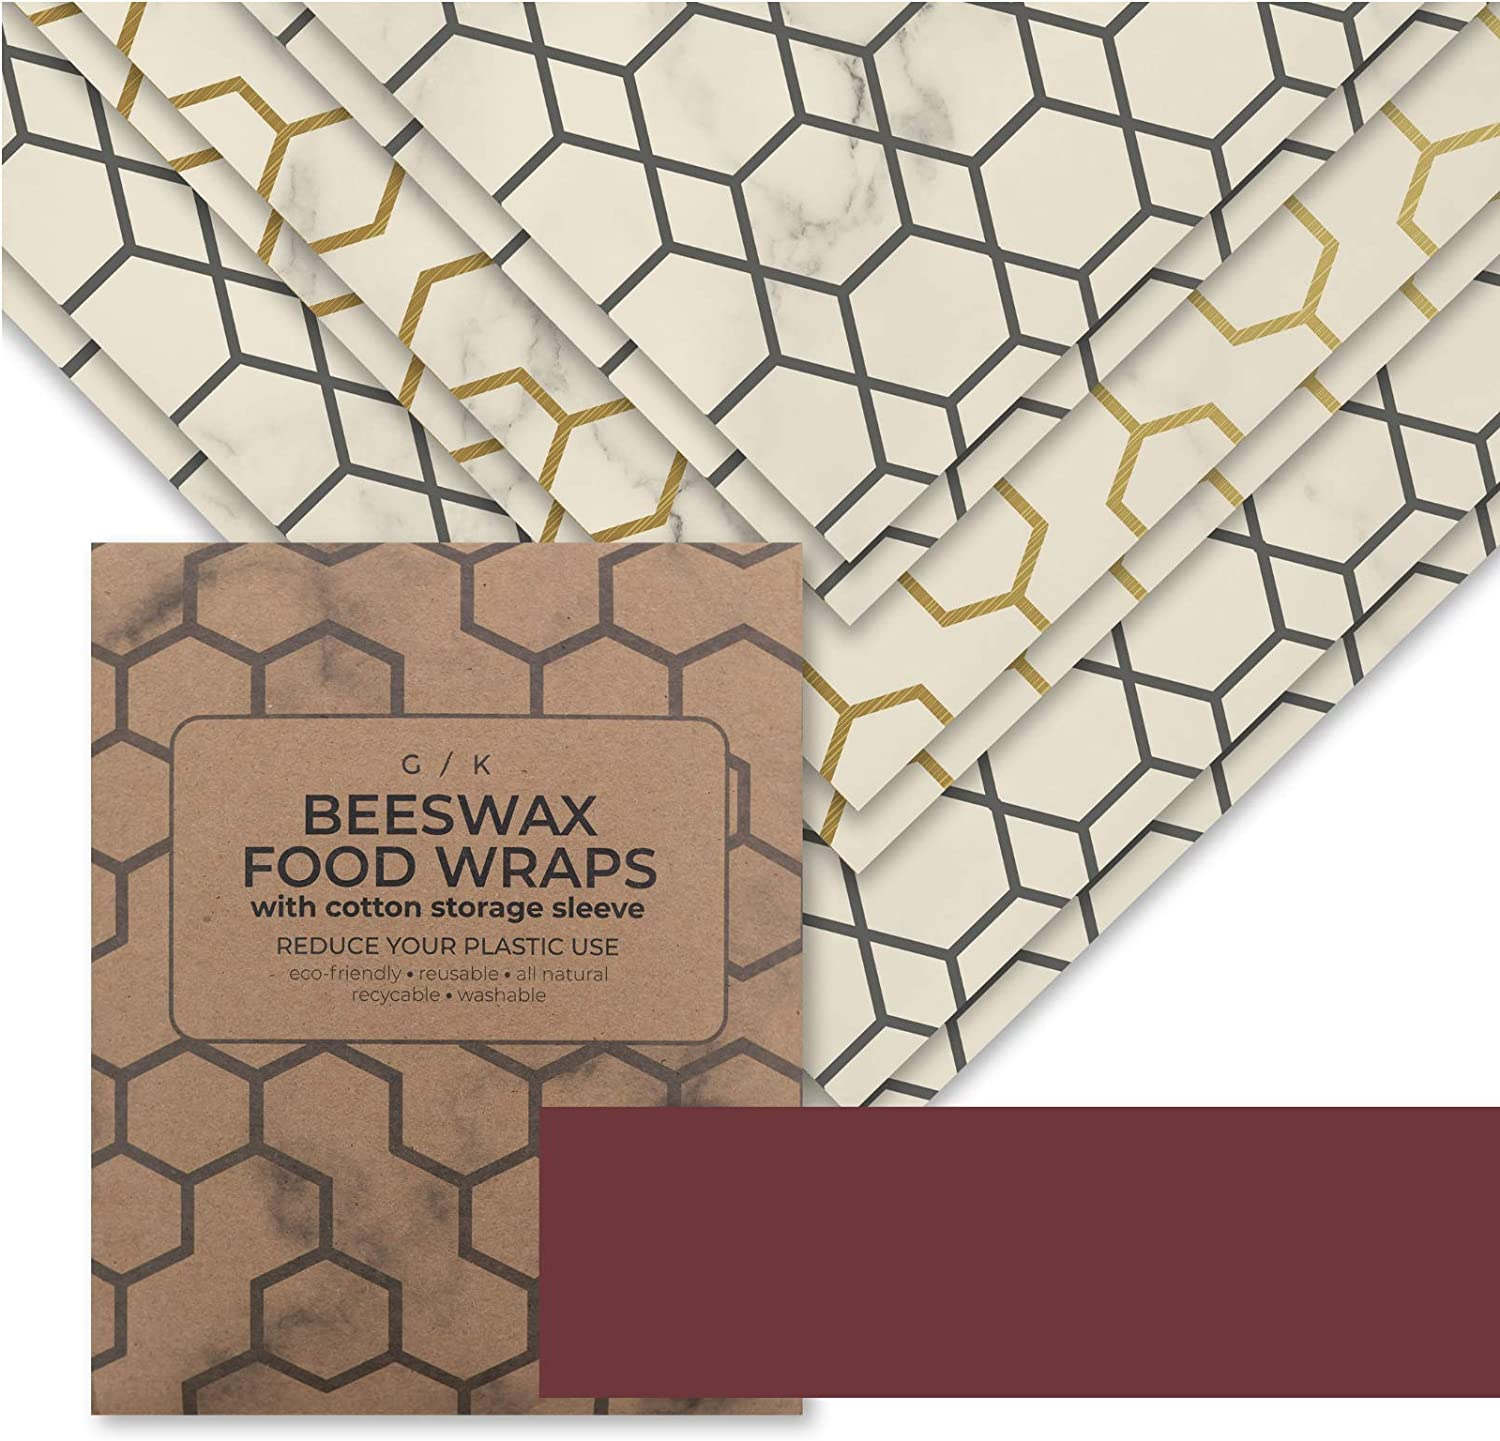 Beeswax Food Wrap - Reusable Beeswax Wrap - Eco Friendly Kitchen Wraps Replacement. Eco Friendly Gifts. 100% Organic Cotton, All Natural Food Grade Wax and Cloth. (6)